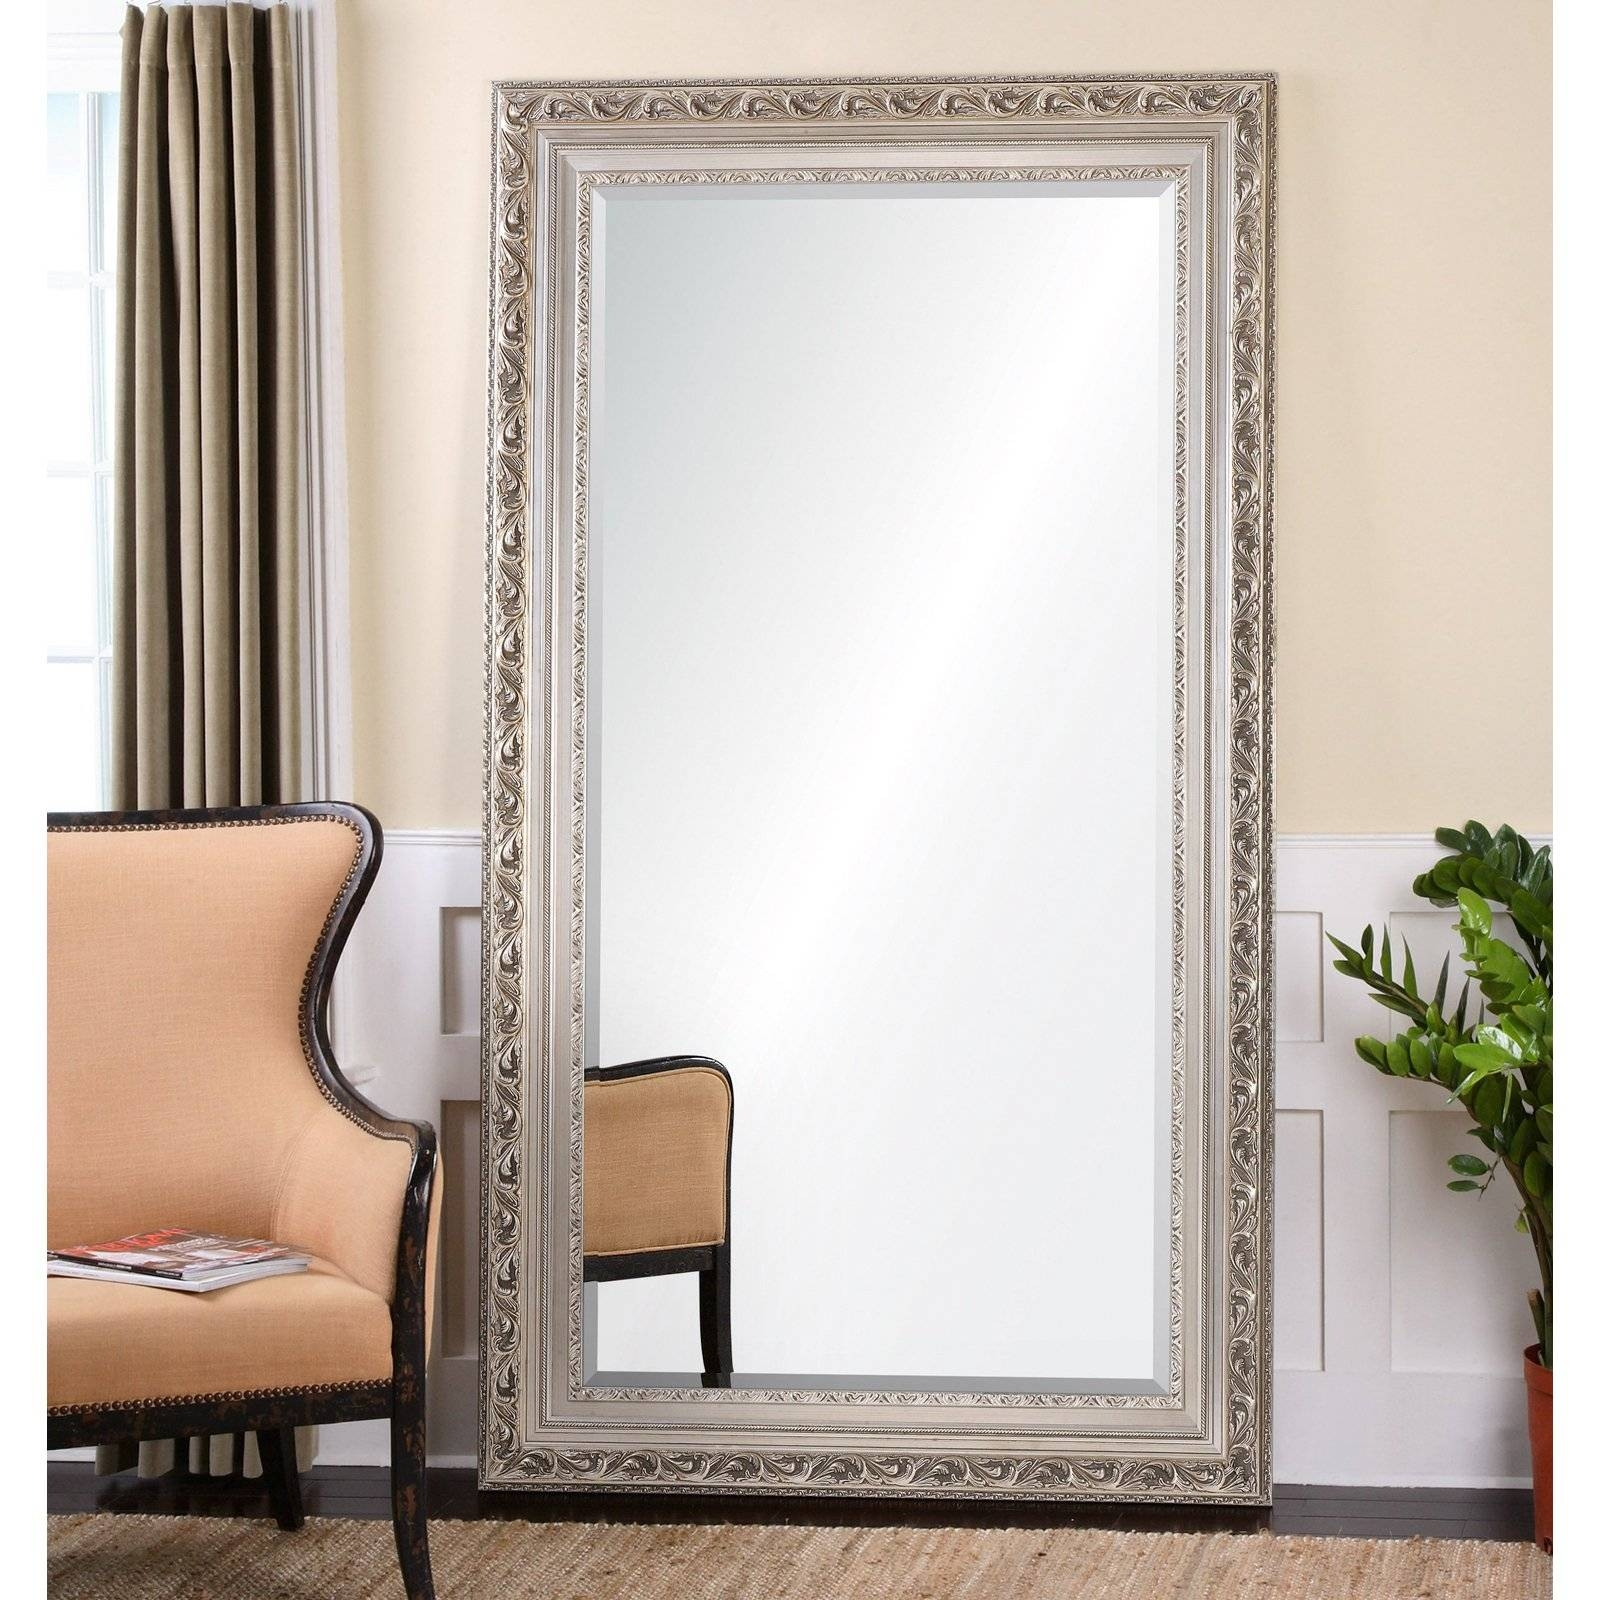 Big Mirrors For Cheap – Harpsounds.co in Huge Cheap Mirrors (Image 13 of 25)